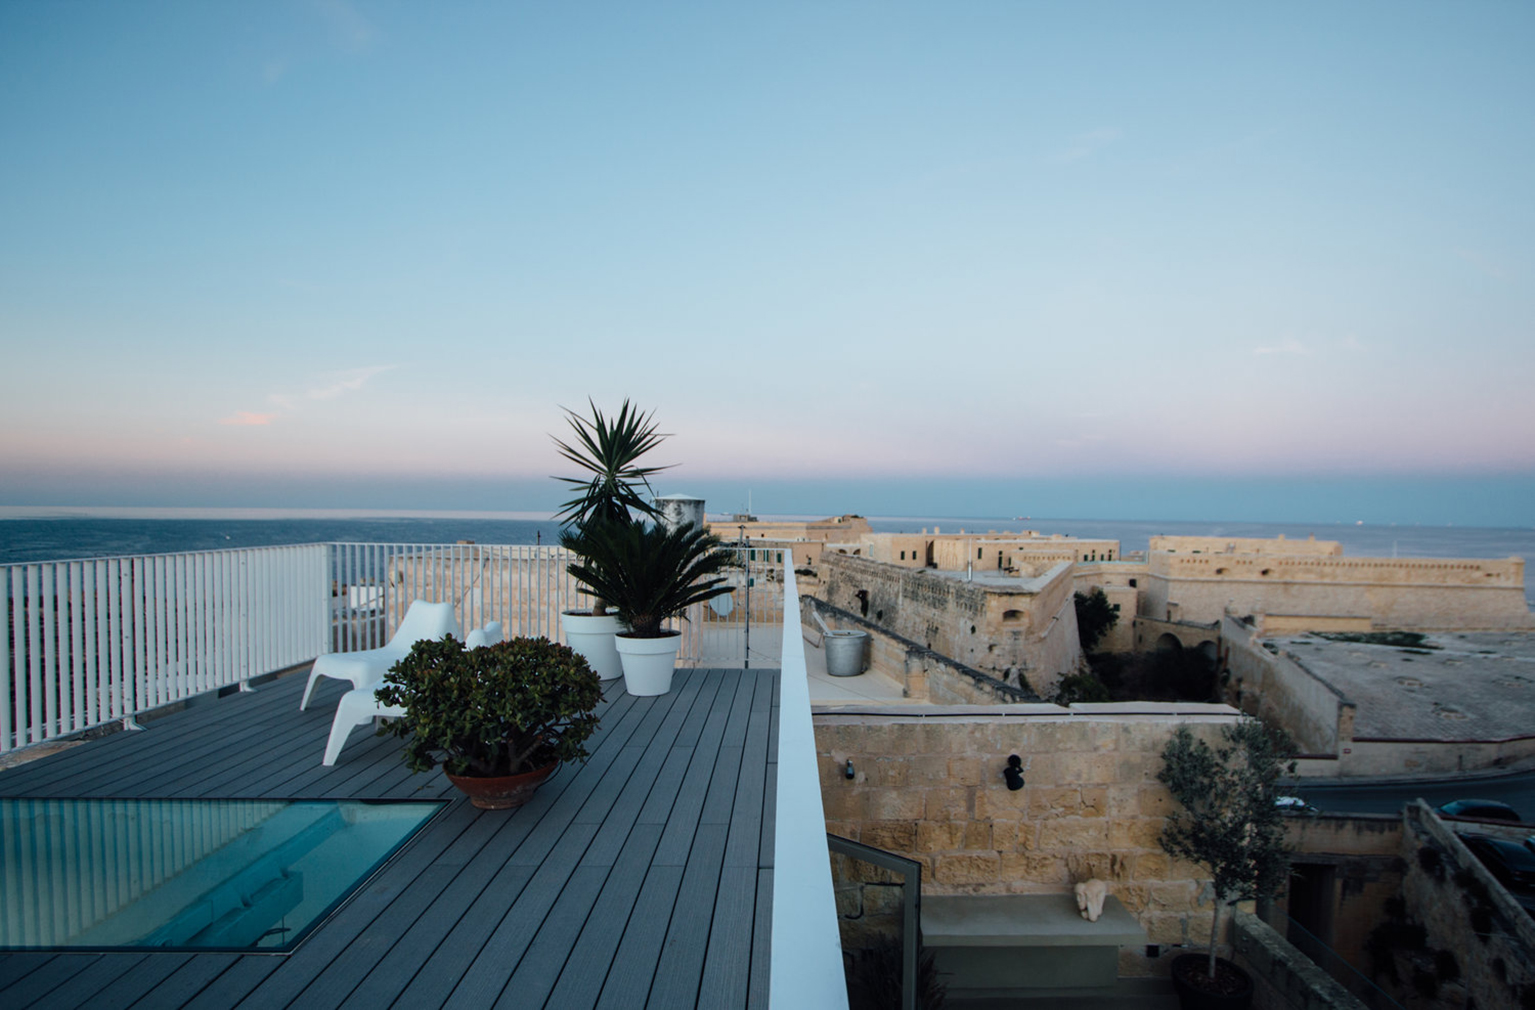 Holiday home of the week: a former architect's studio in Valletta, Malta